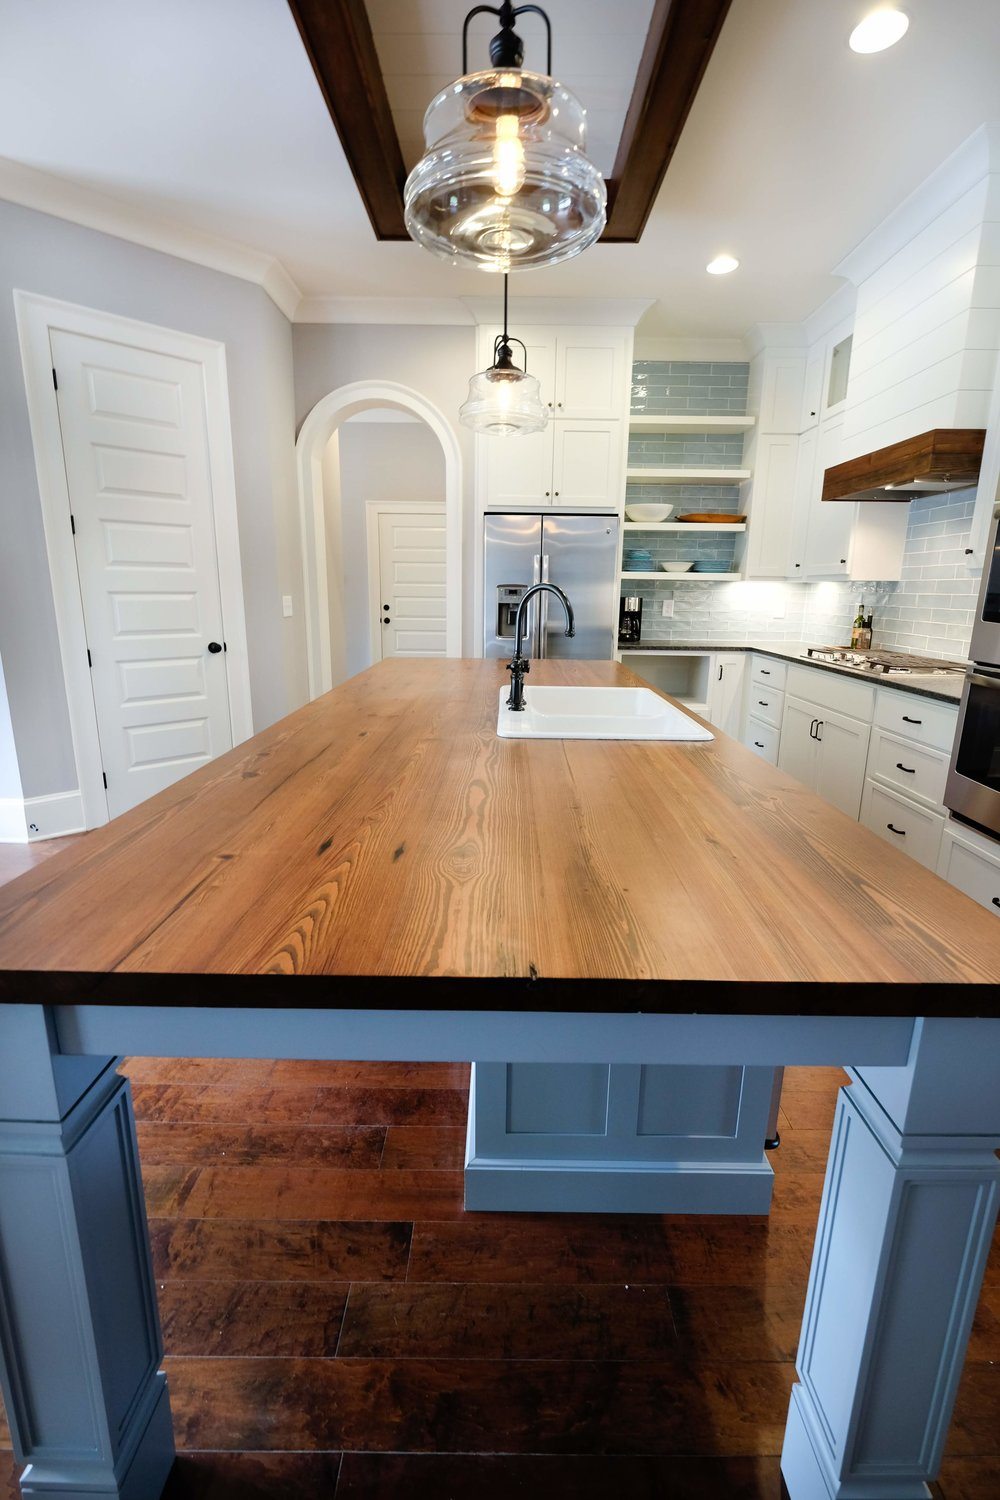 Reclaimed Heart Pine Countertop with Dark Stain